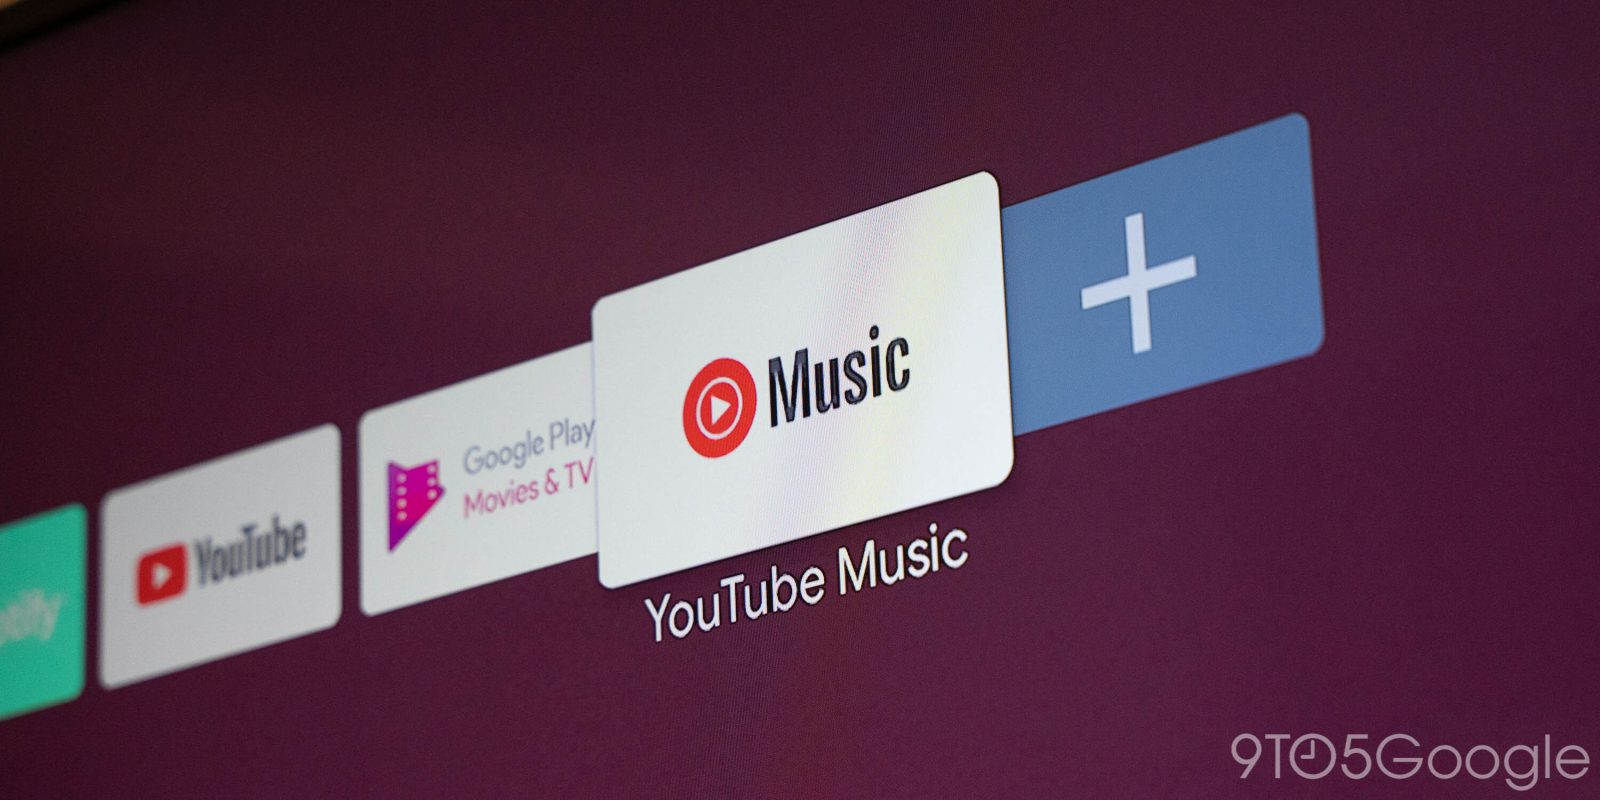 Youtube Music On Google Tv Gets Better User Library Access 9to5google